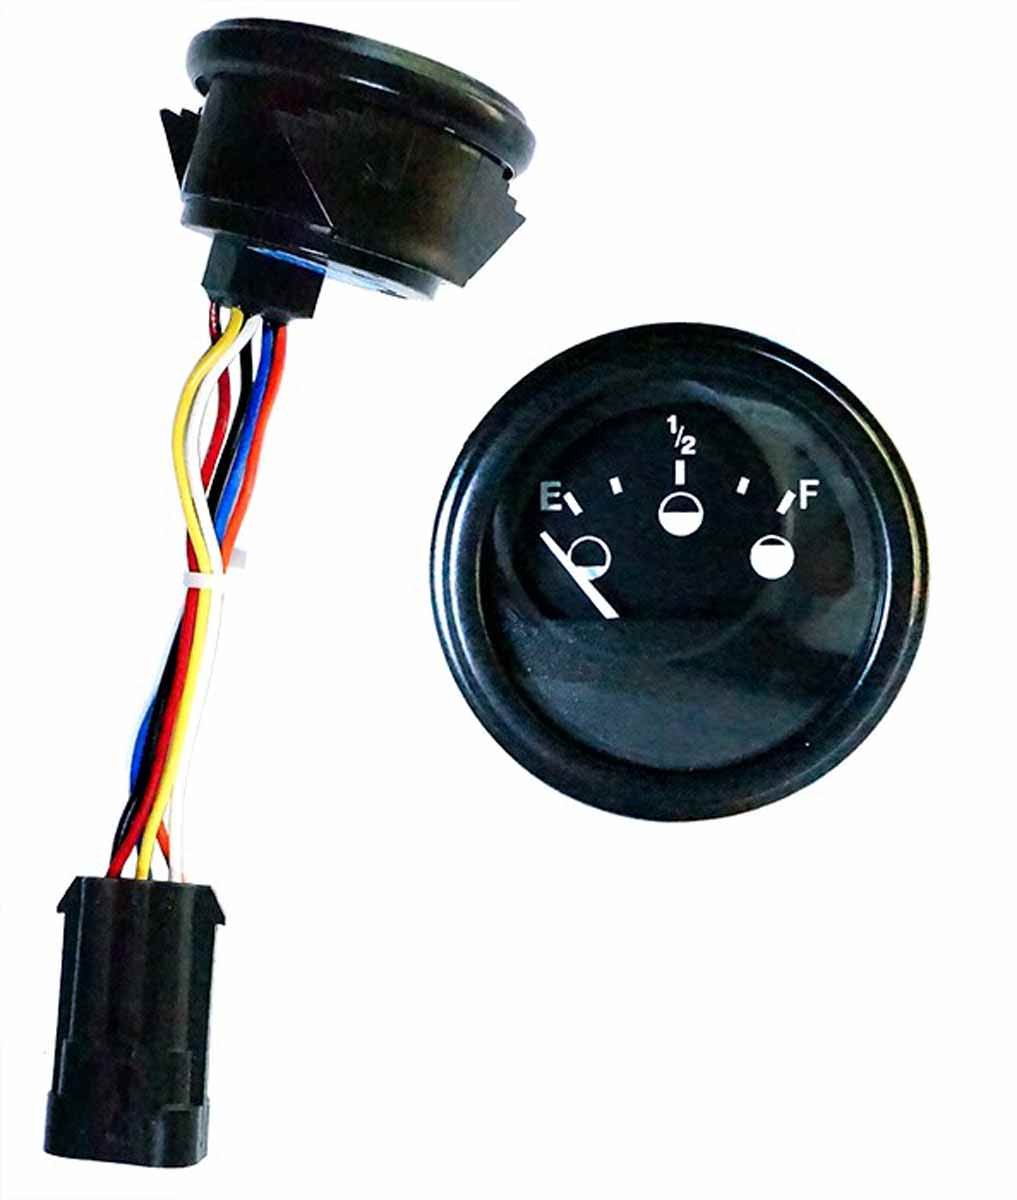 hight resolution of state of charge meter for ezgo rxv golf carts